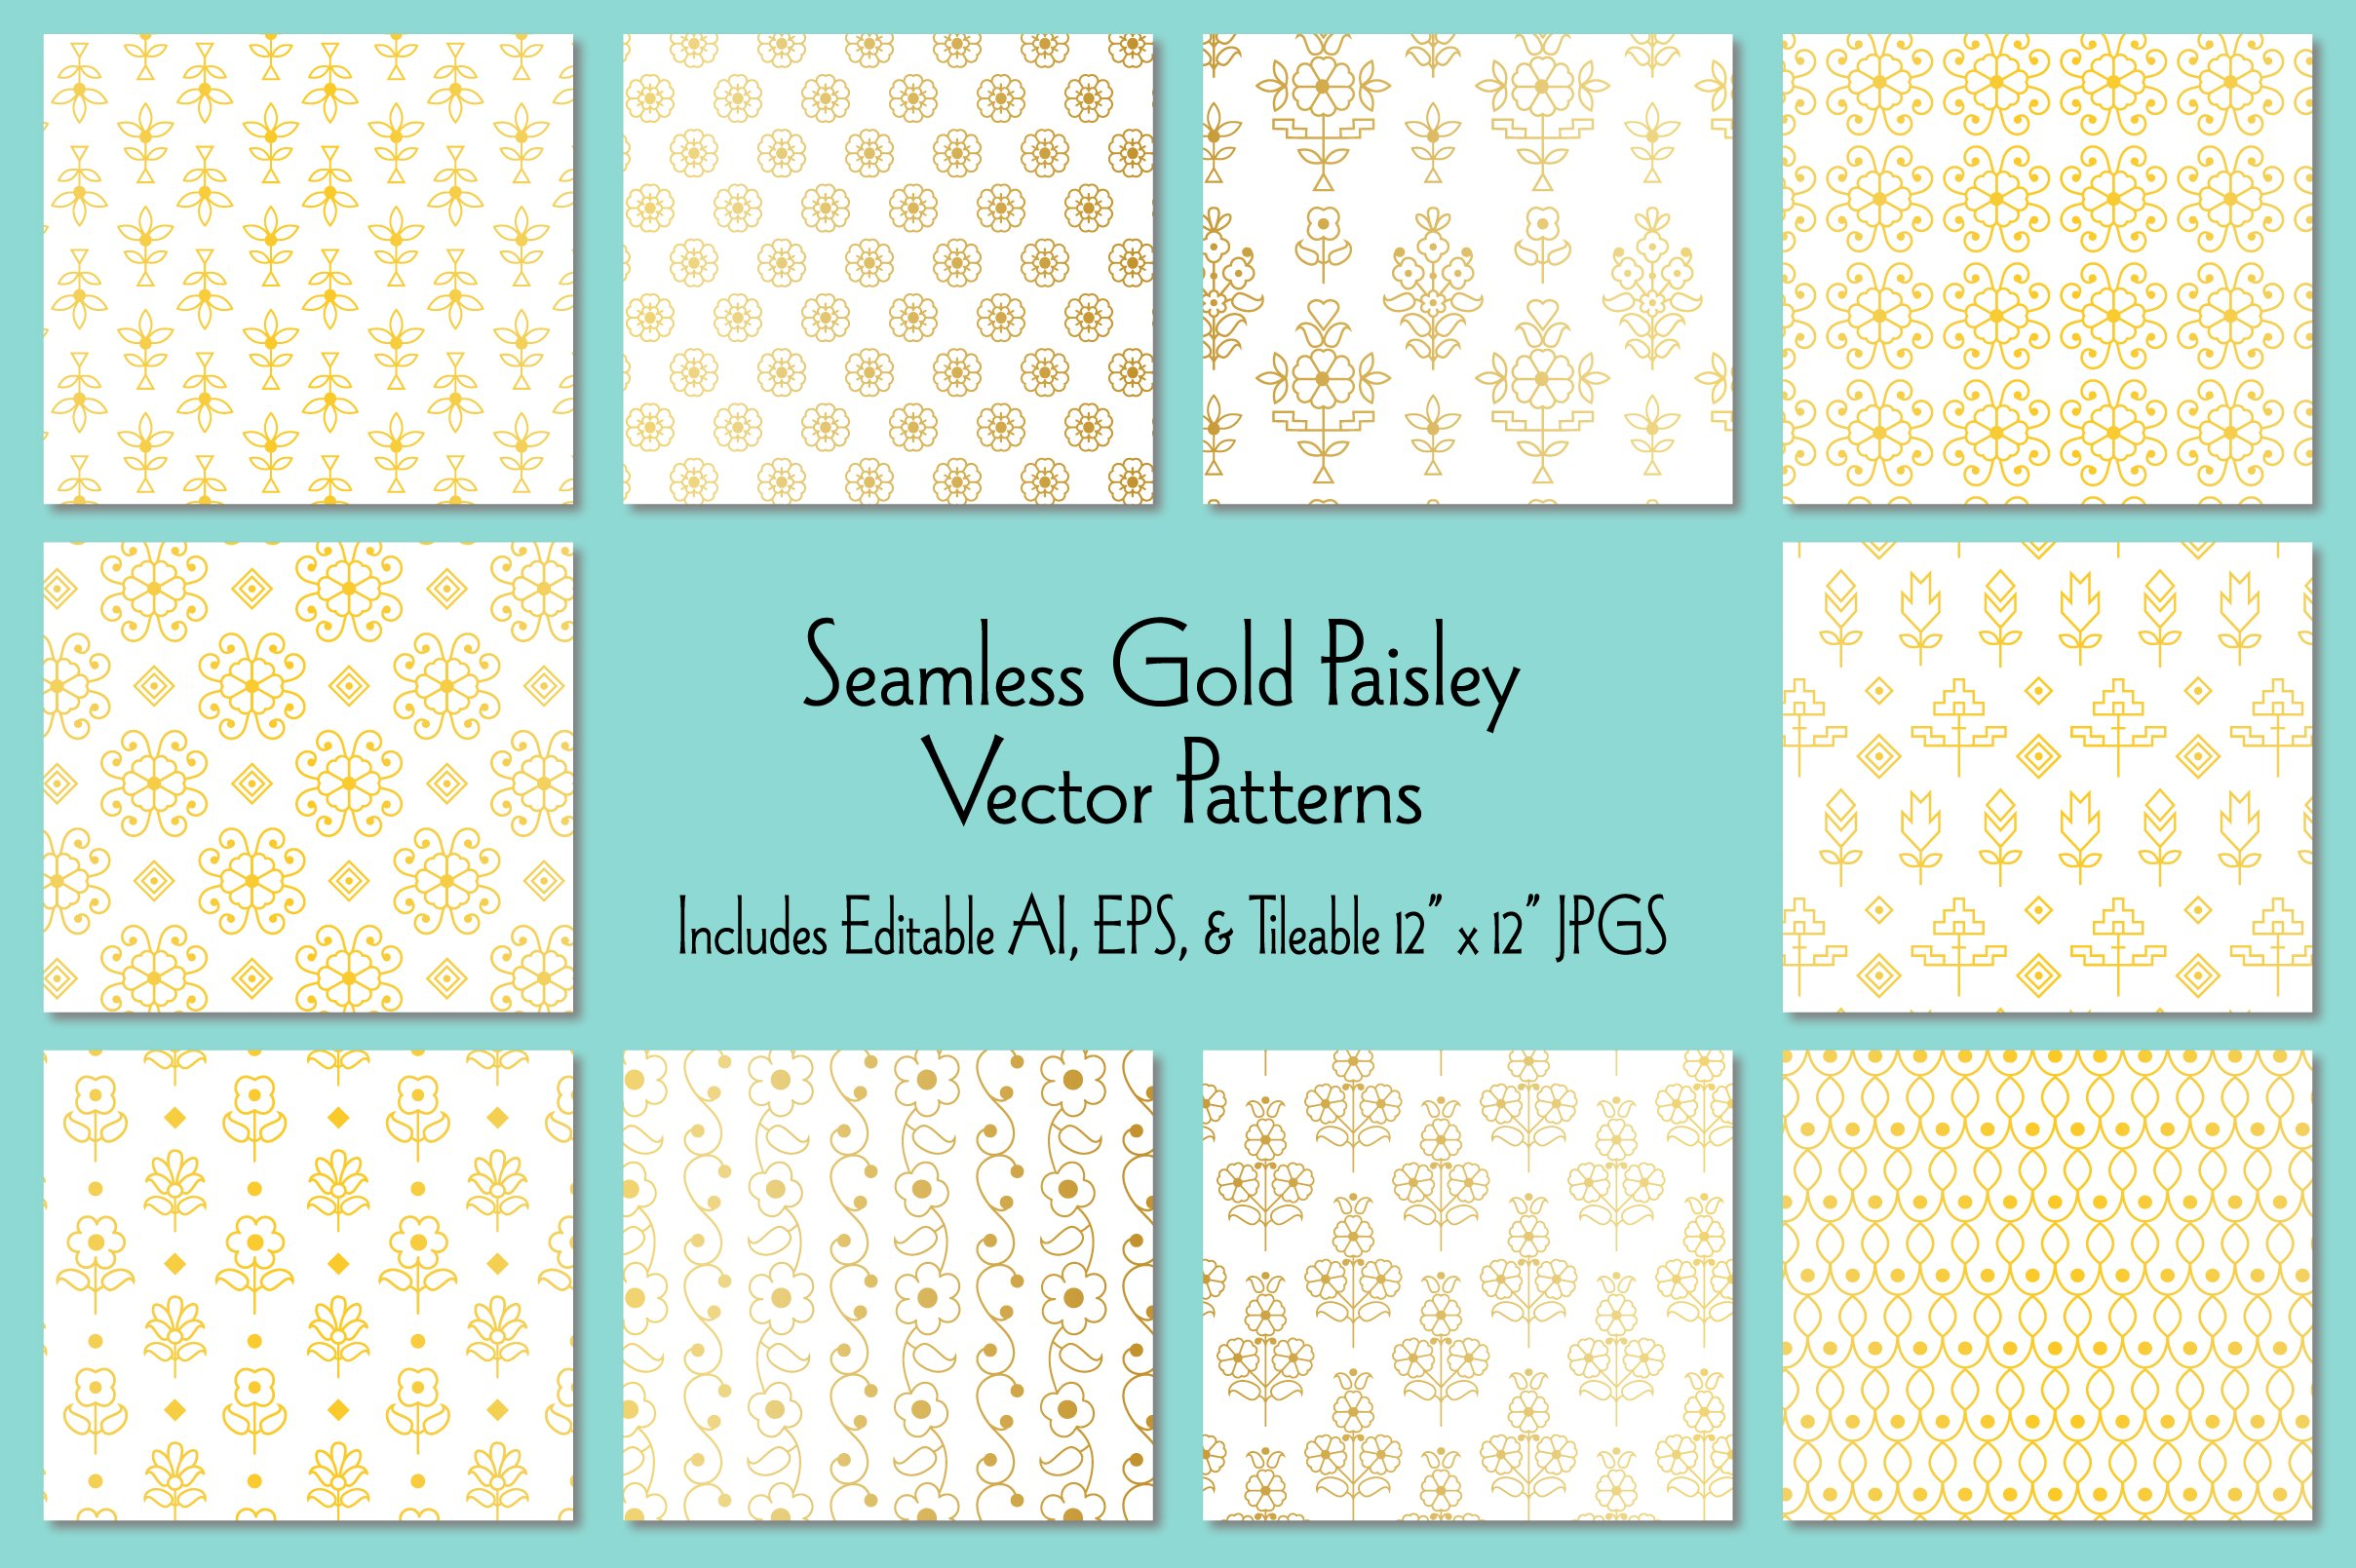 Seamless Gold Paisley Patterns example image 1